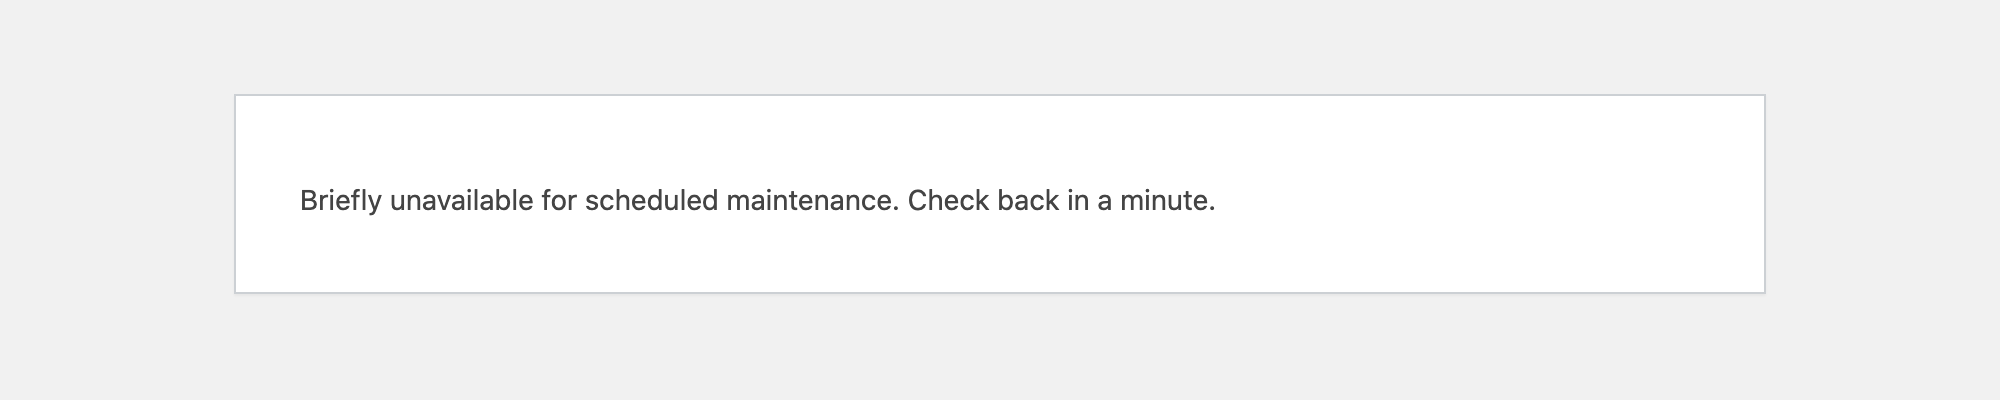 Briefly unavailable for scheduled maintenance. Check back in a minute.